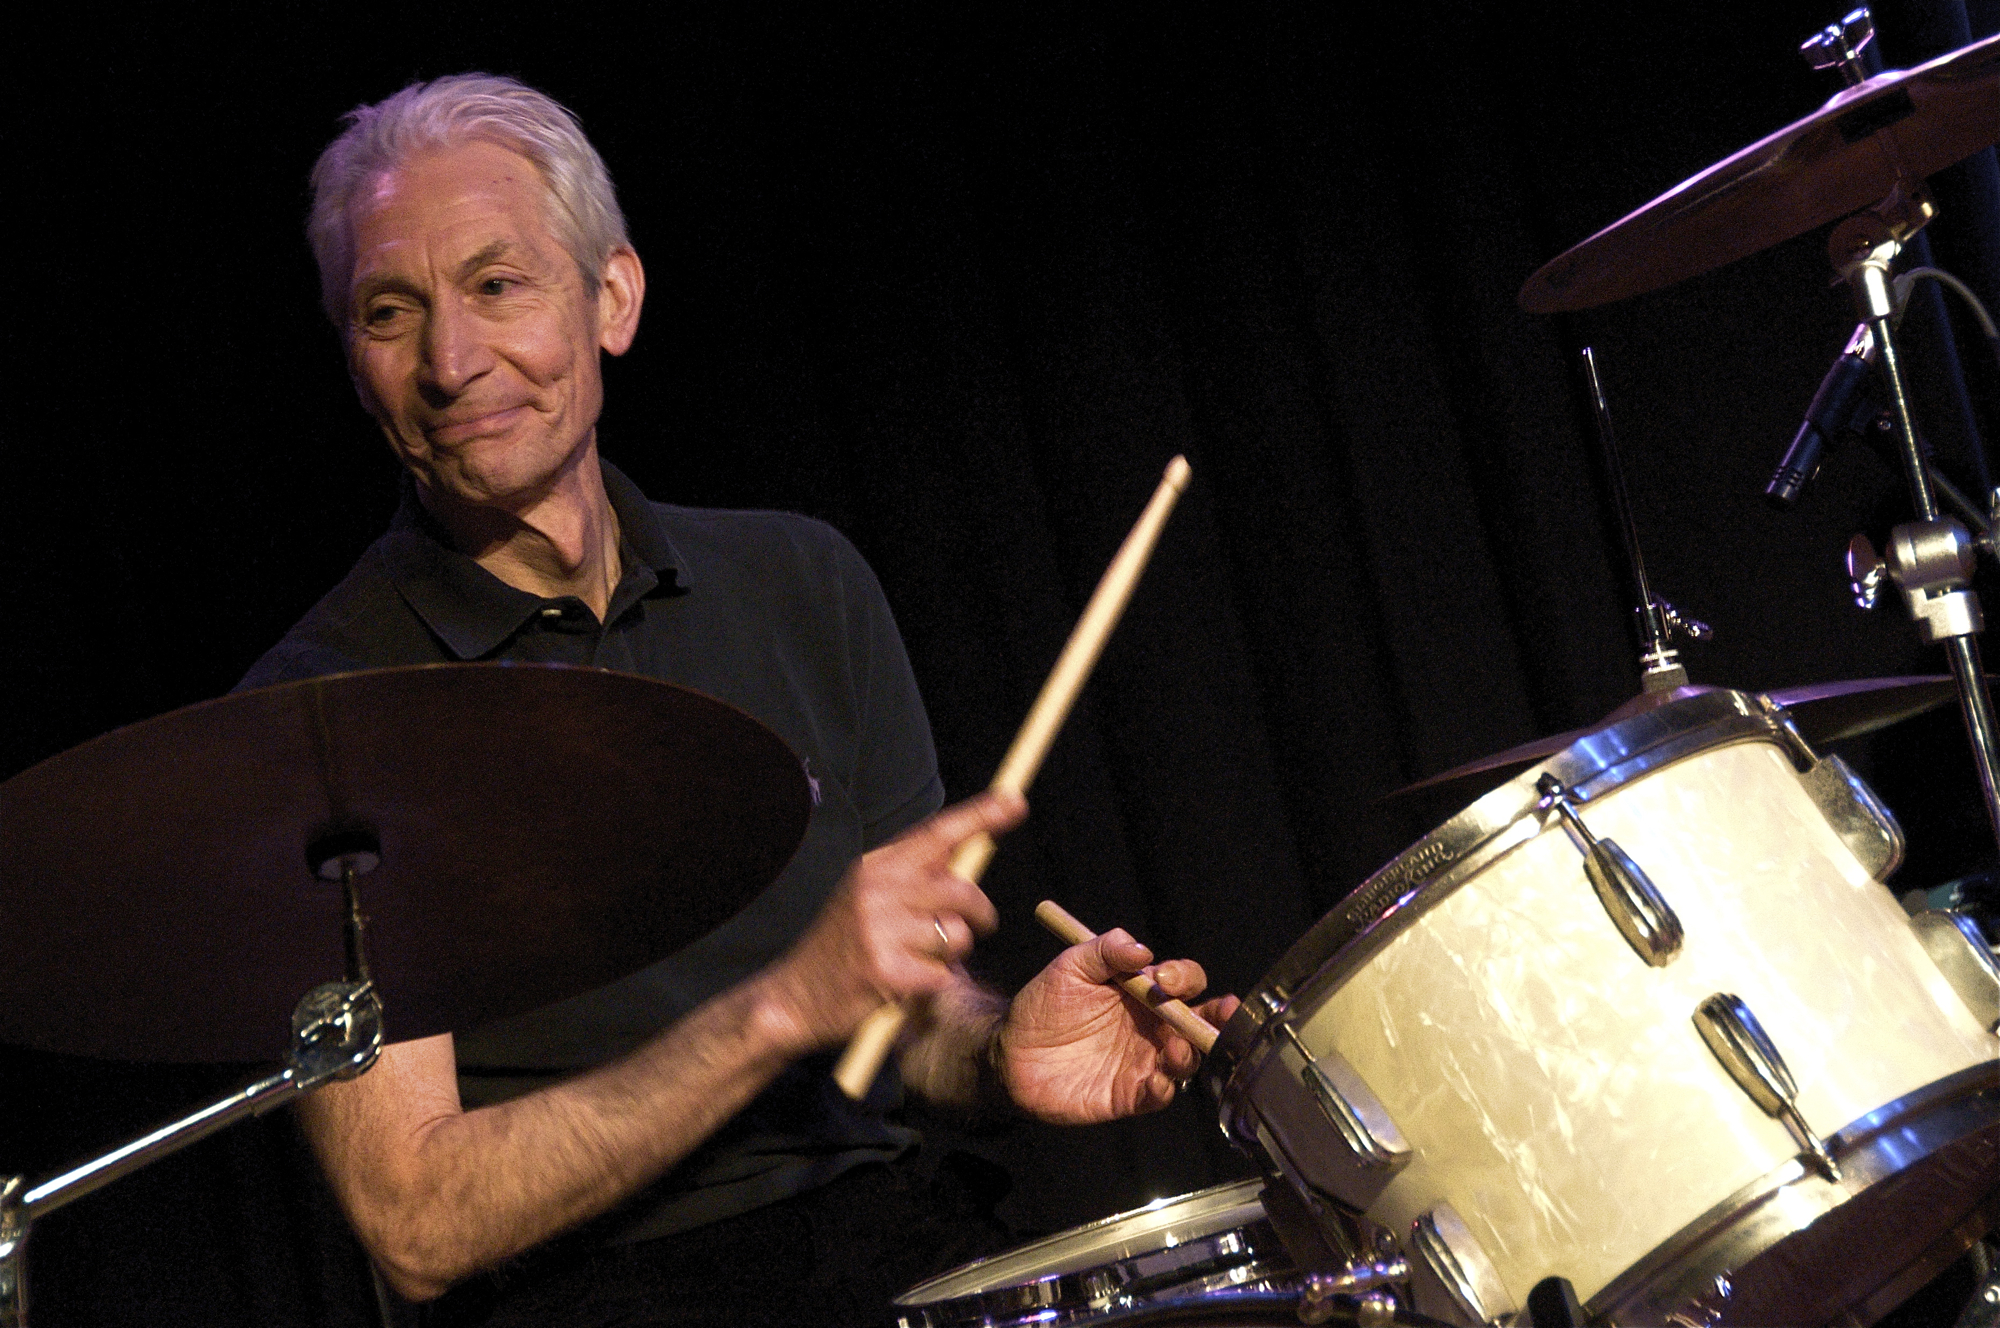 https://upload.wikimedia.org/wikipedia/commons/9/90/Charlie_Watts_on_drums_The_ABC_%26_D_of_Boogie_Woogie_%282010%29.jpg